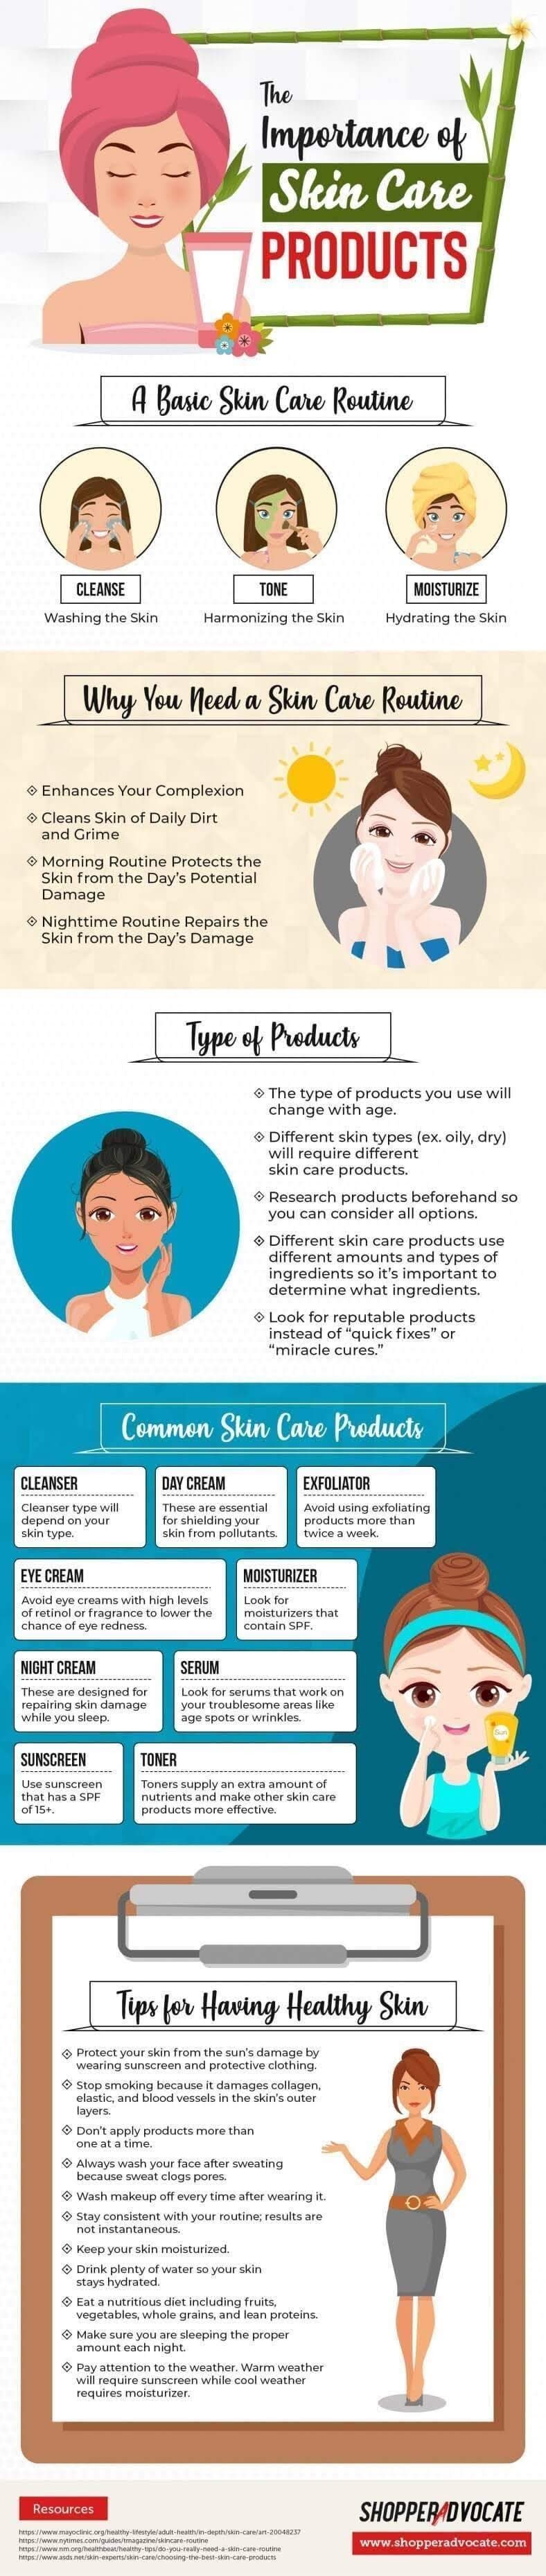 The Importance of Skin Care Products #infographic